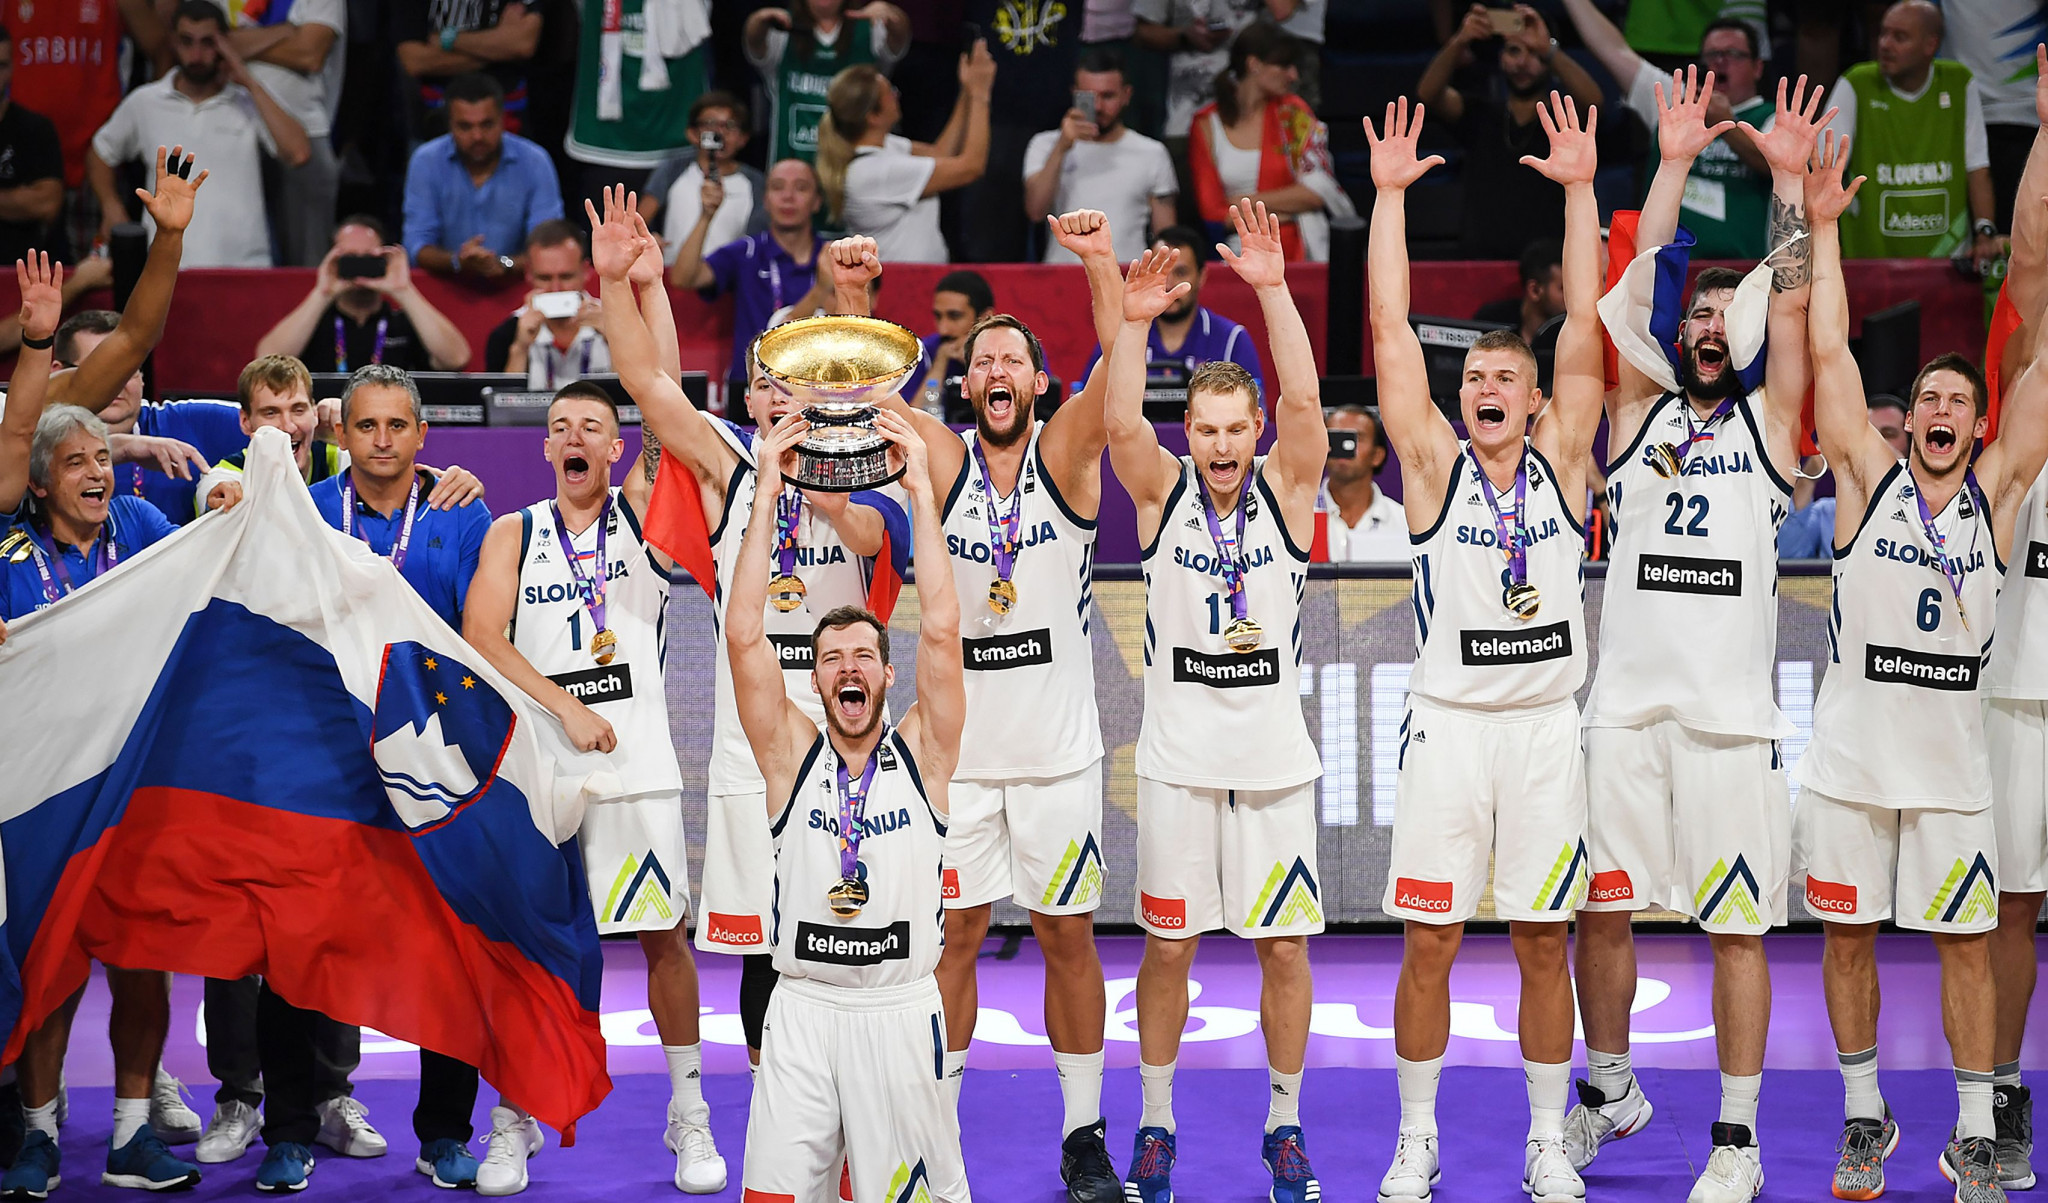 Hosts announced for men's and women's EuroBasket tournaments in 2021